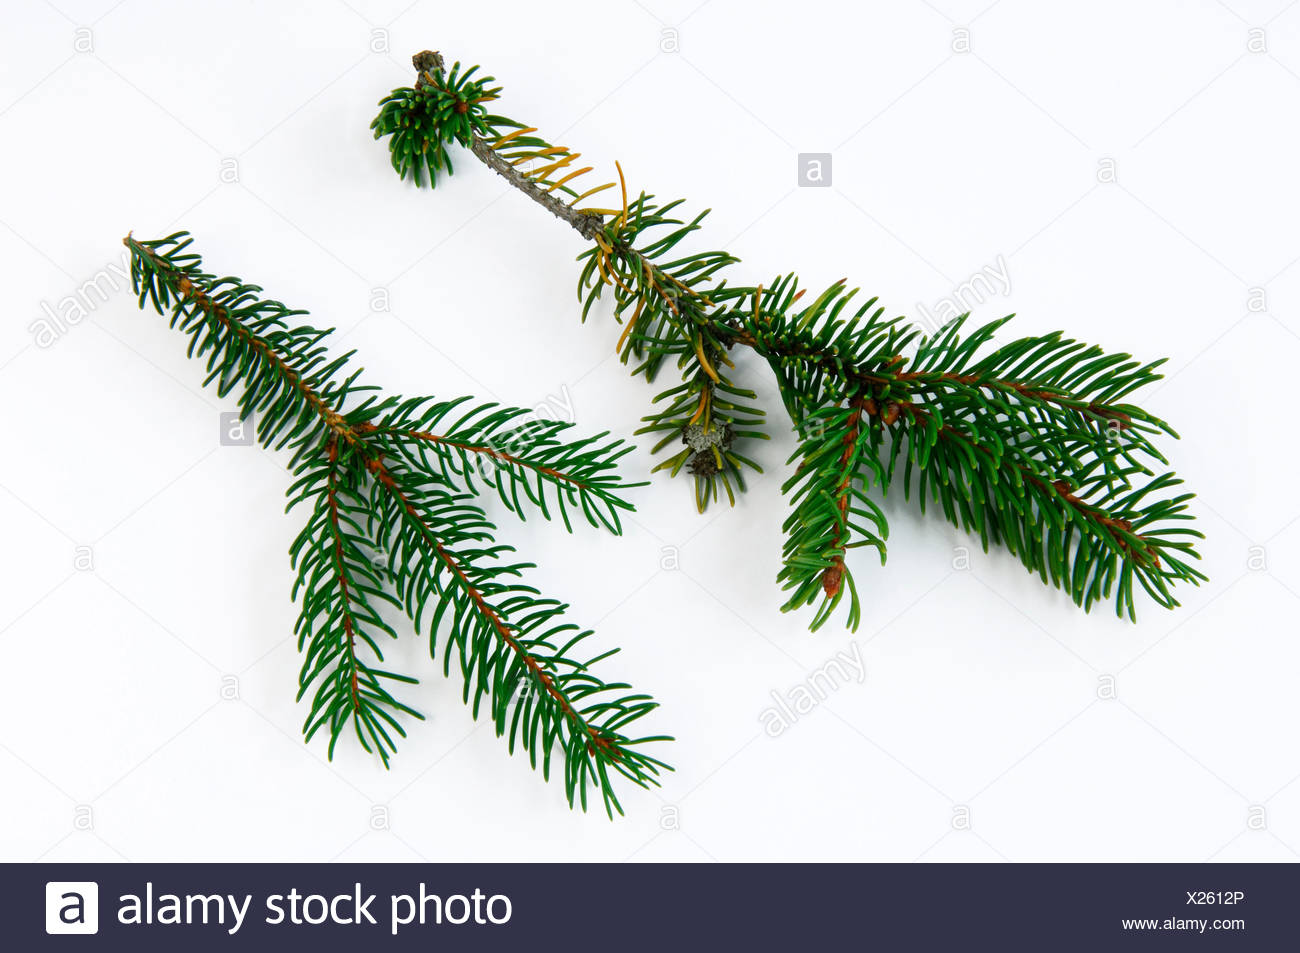 Norway Spruce, Common Spruce (Picea abies). Healthy and damaged twig with fallen off needles and discoloration of needles. Studio picture against a white background. Germany - Stock Image